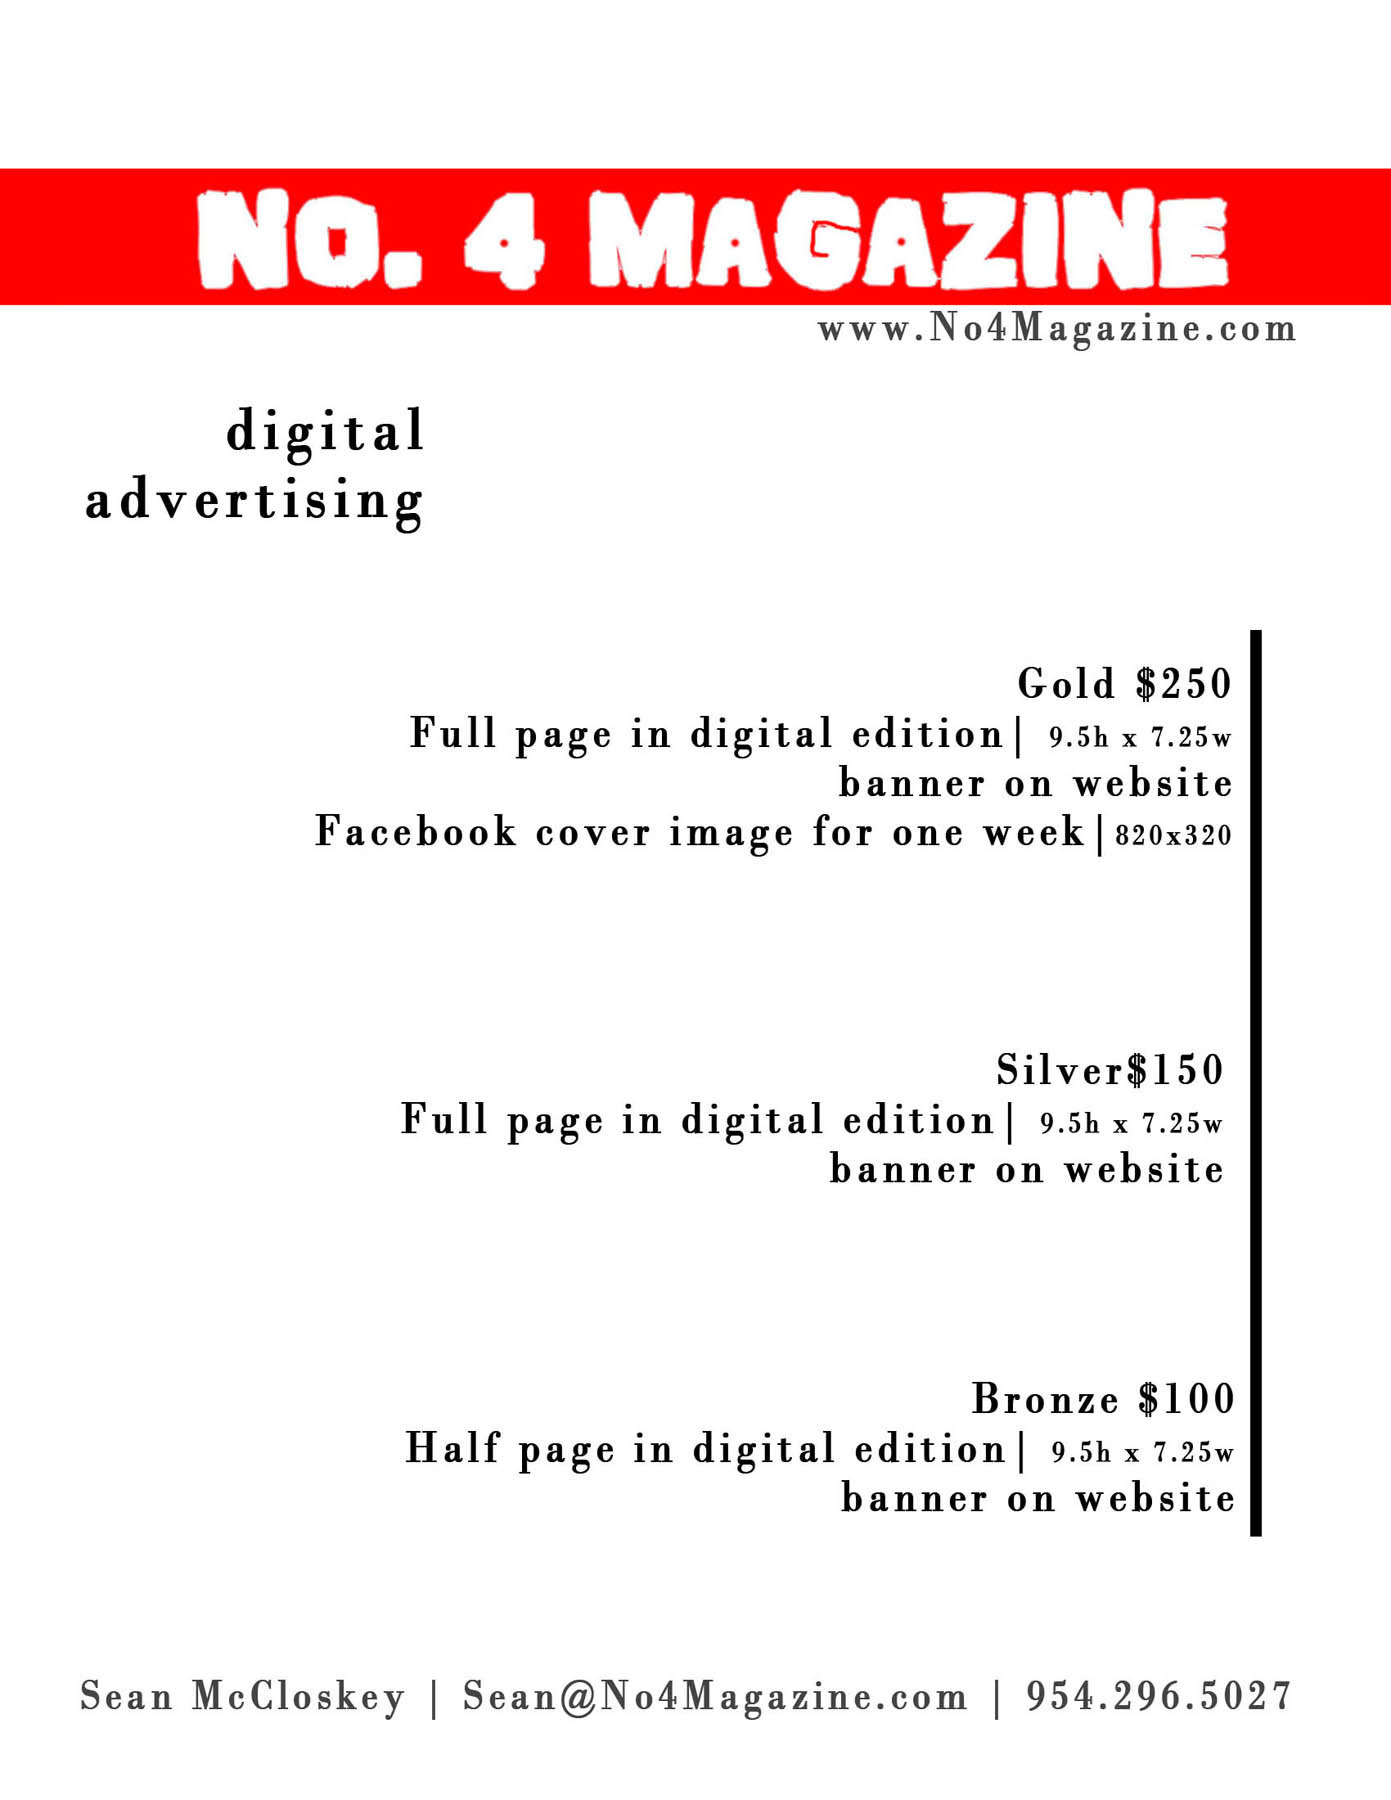 No4Magazine-AdvertisingWEB.jpg